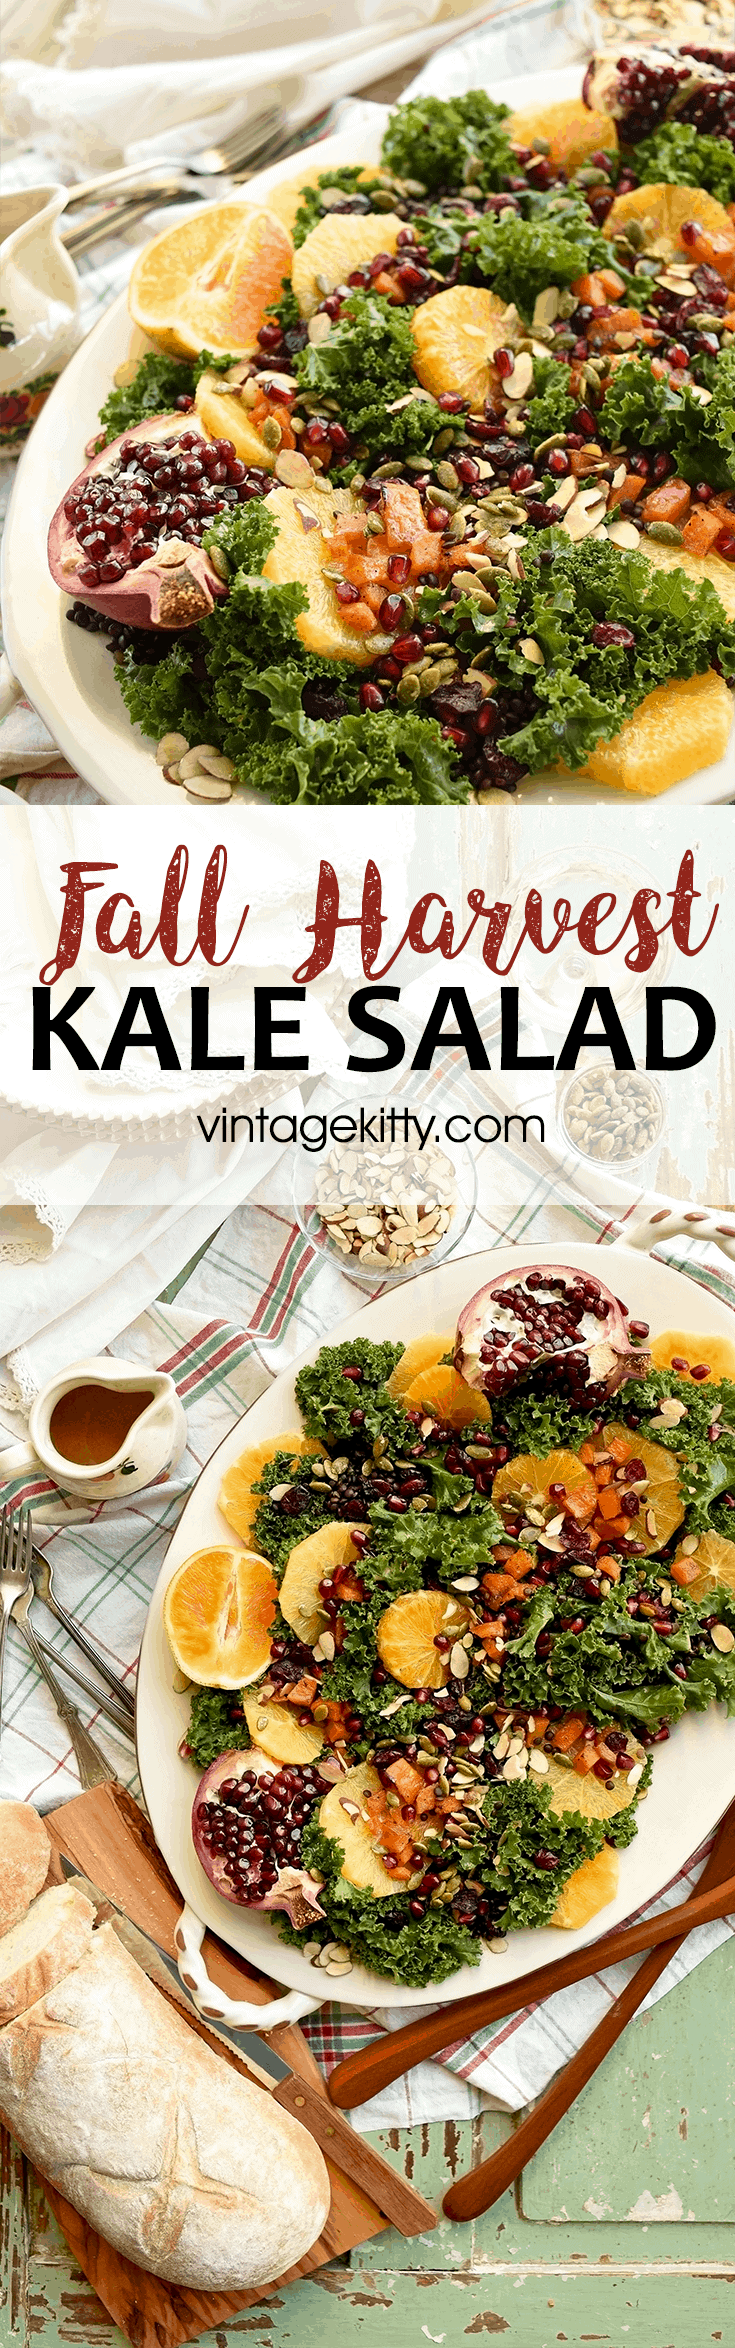 Colorful, fresh and seasonal, this Fall Harvest Kale Salad will bring everyone to the dinner table! #kalesalad #thanksgiving #vegan